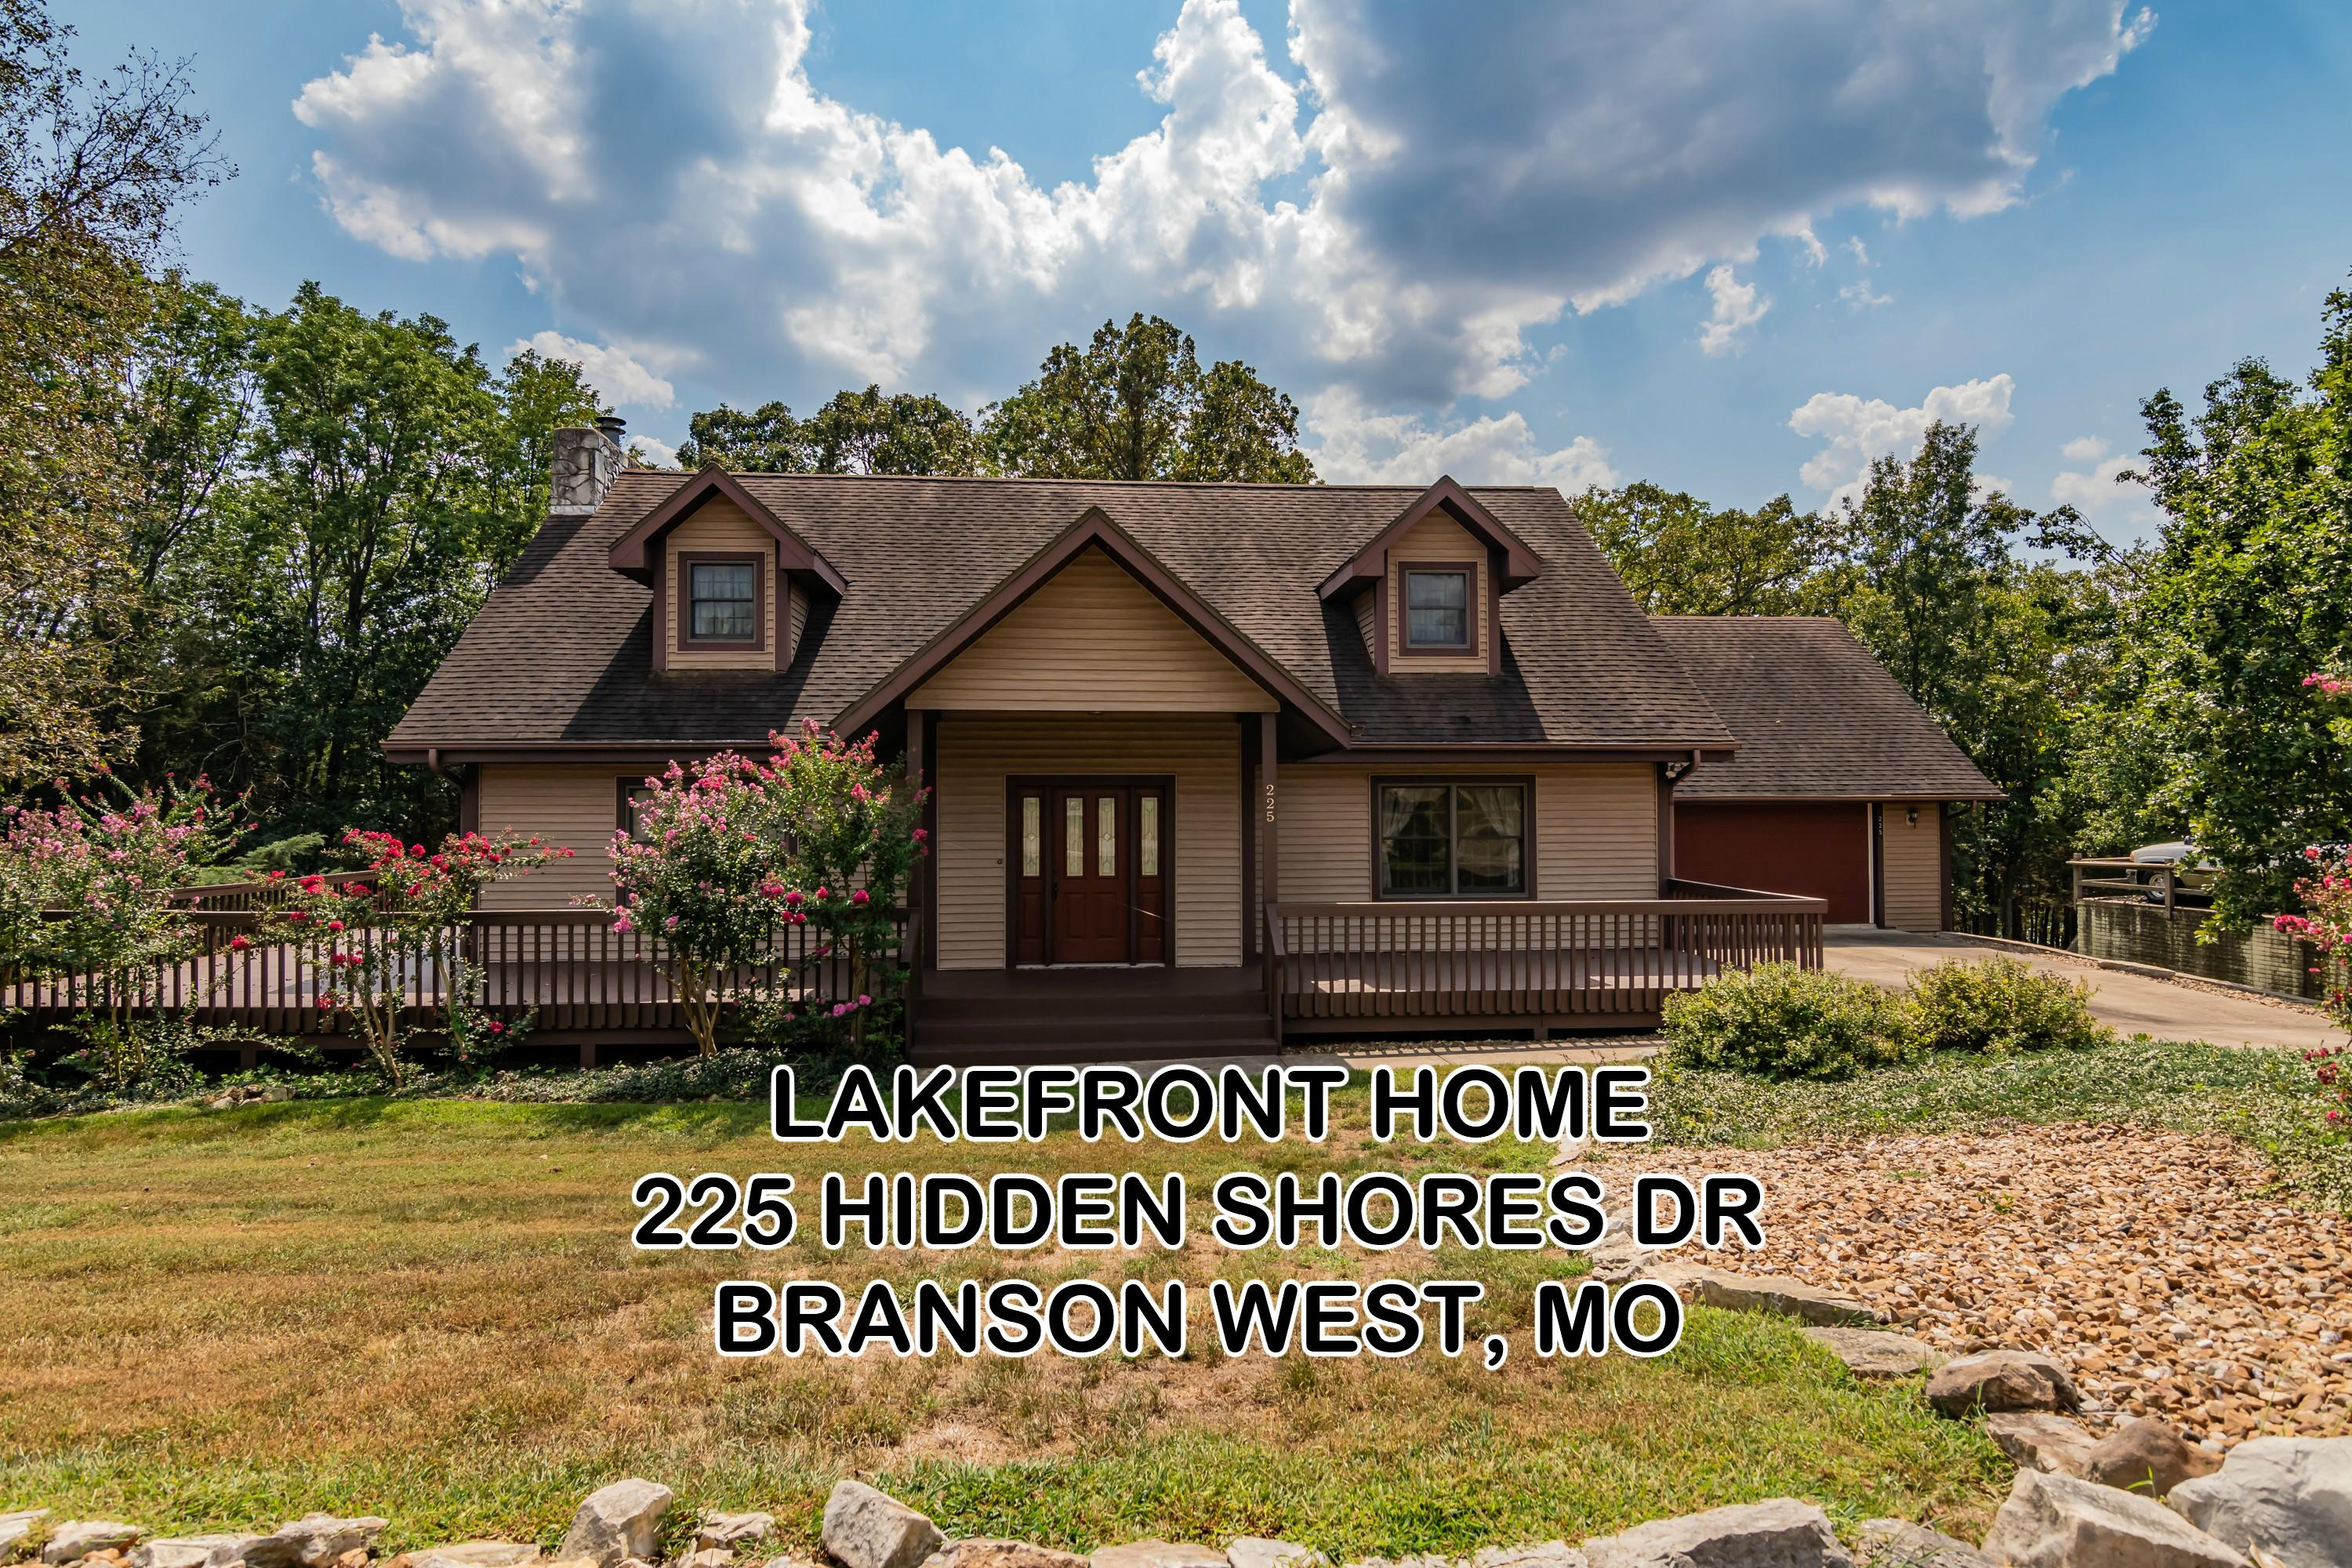 225 Hidden Shores Drive Branson West, MO 65737